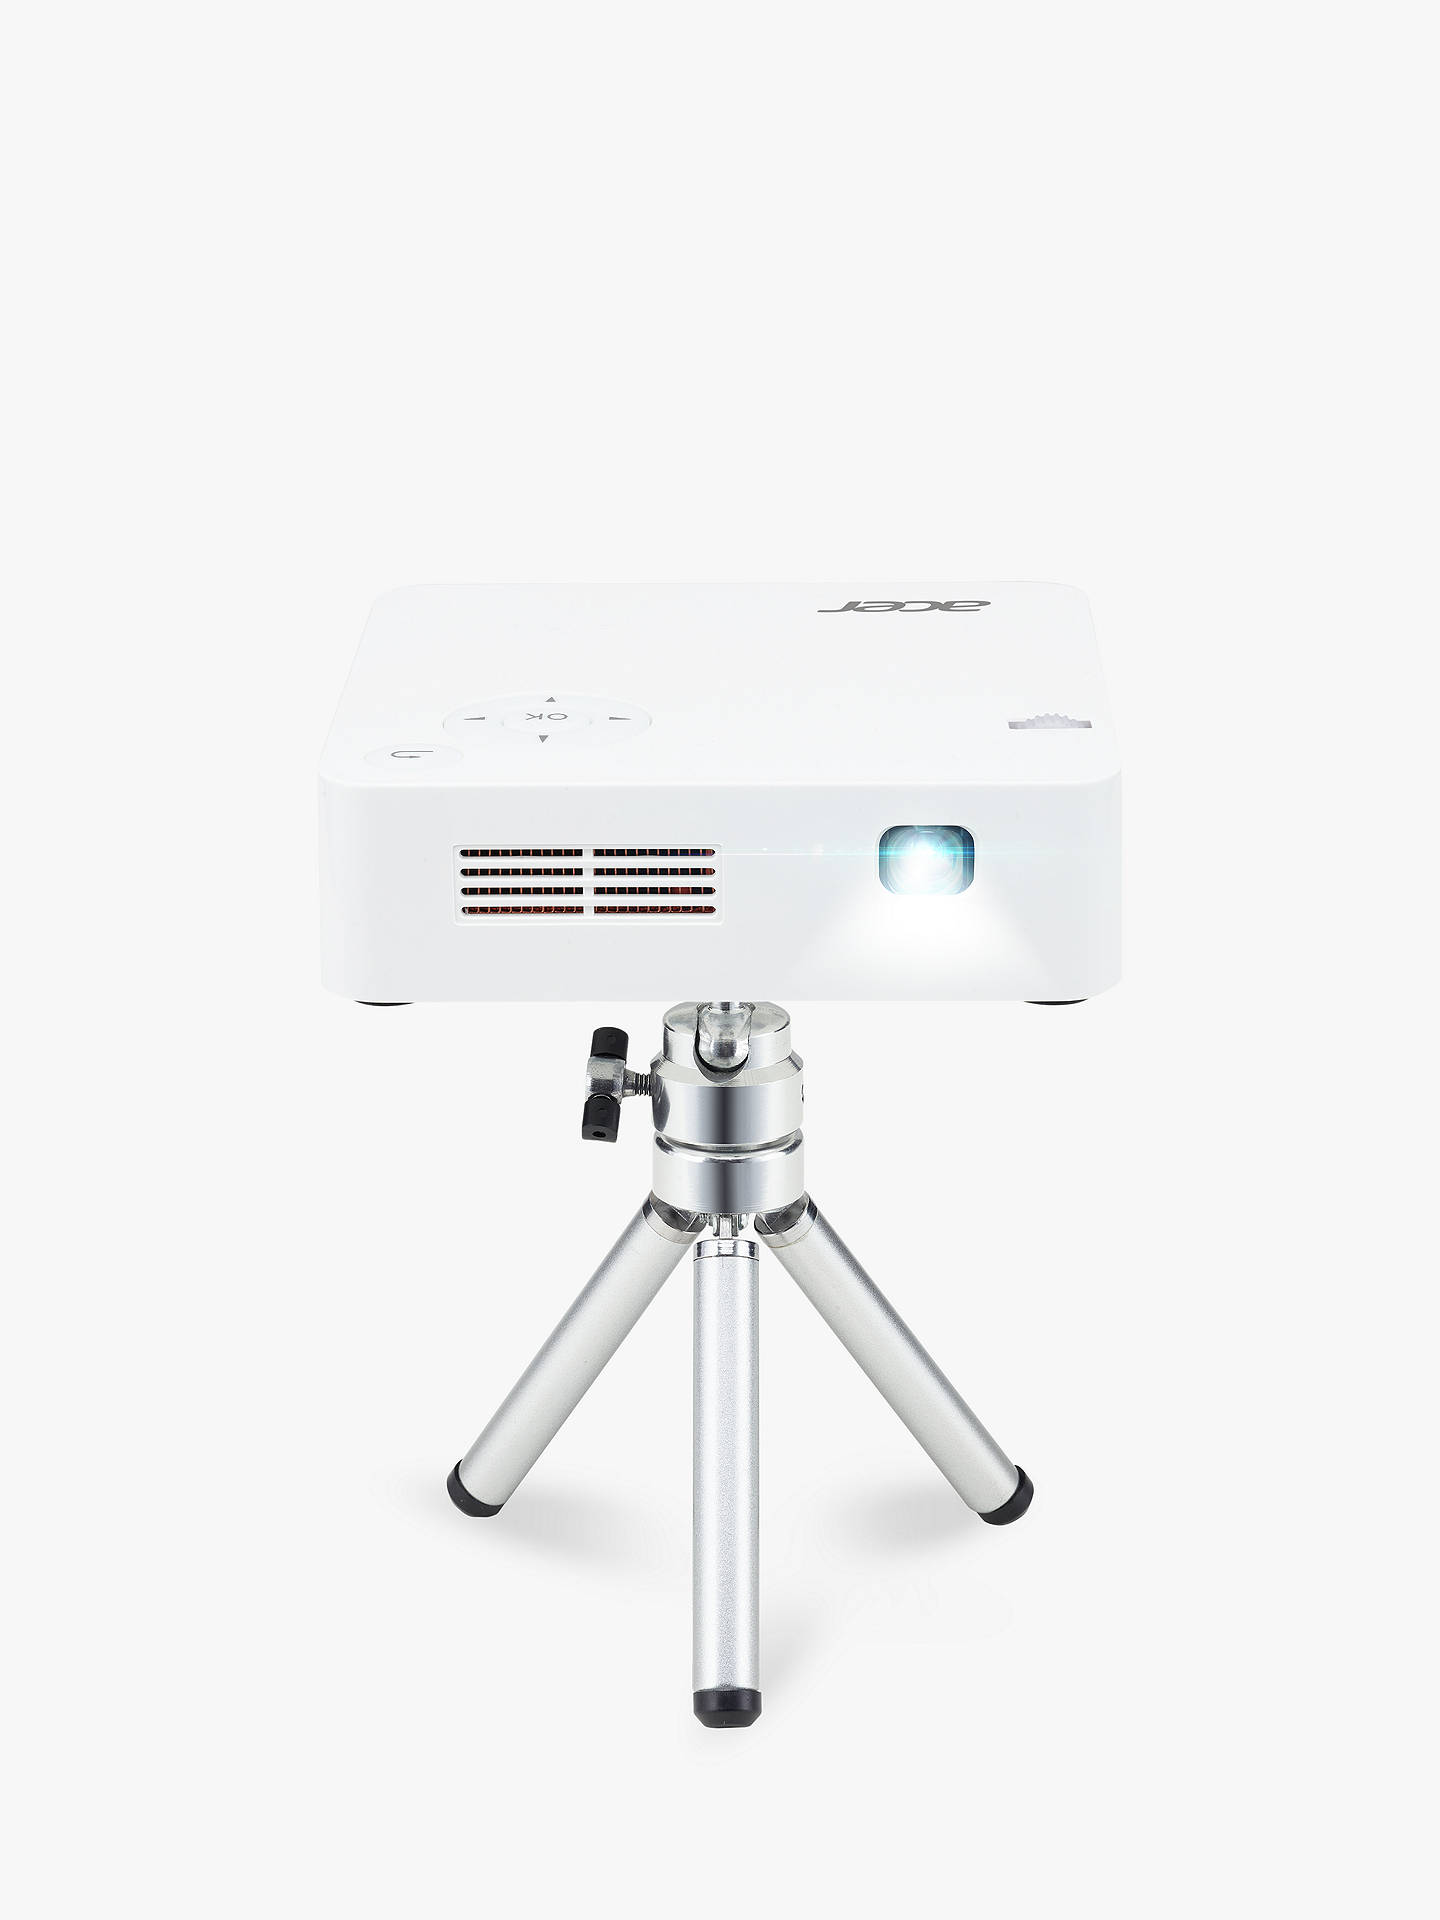 Buy Acer C202i Portable Projector, 300 Lumens Online at johnlewis.com